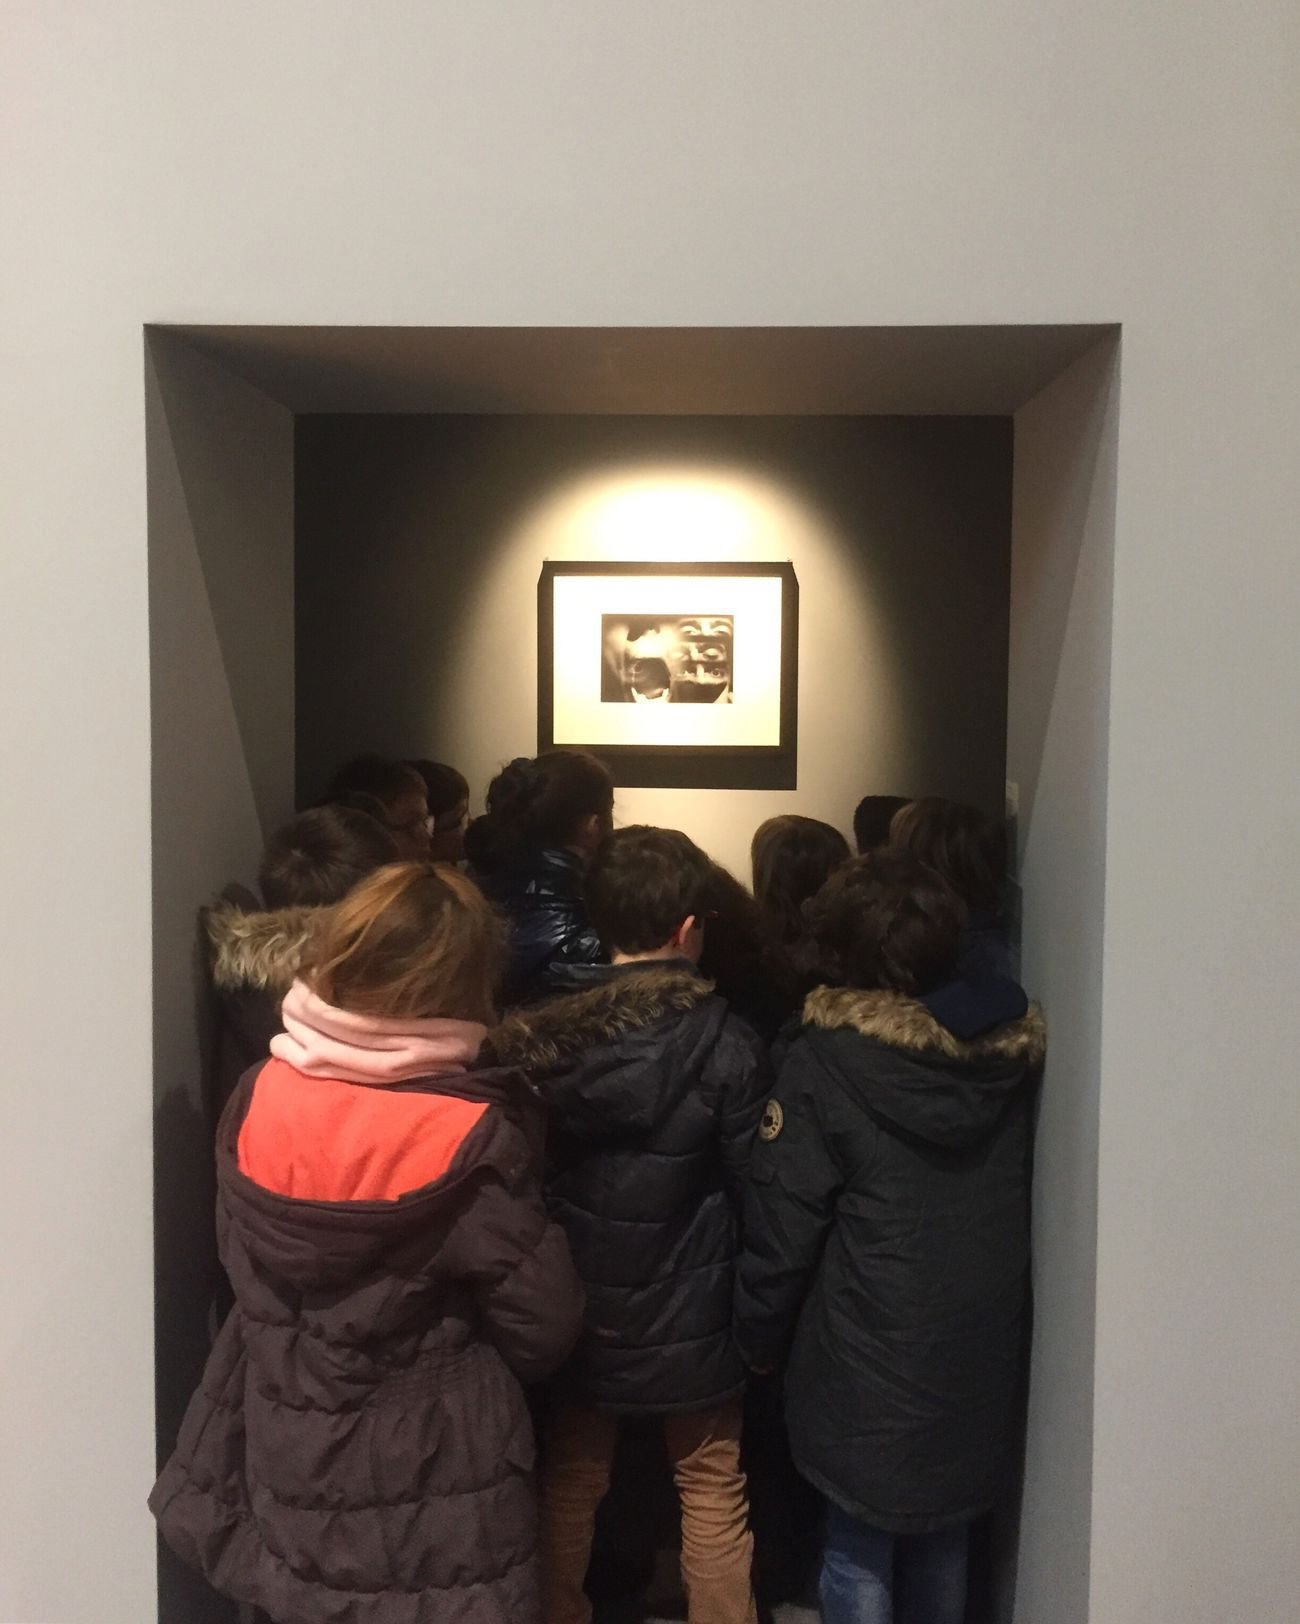 Real People Lifestyles Leisure Activity Indoors  Togetherness Art Inspection Kids At The Museum